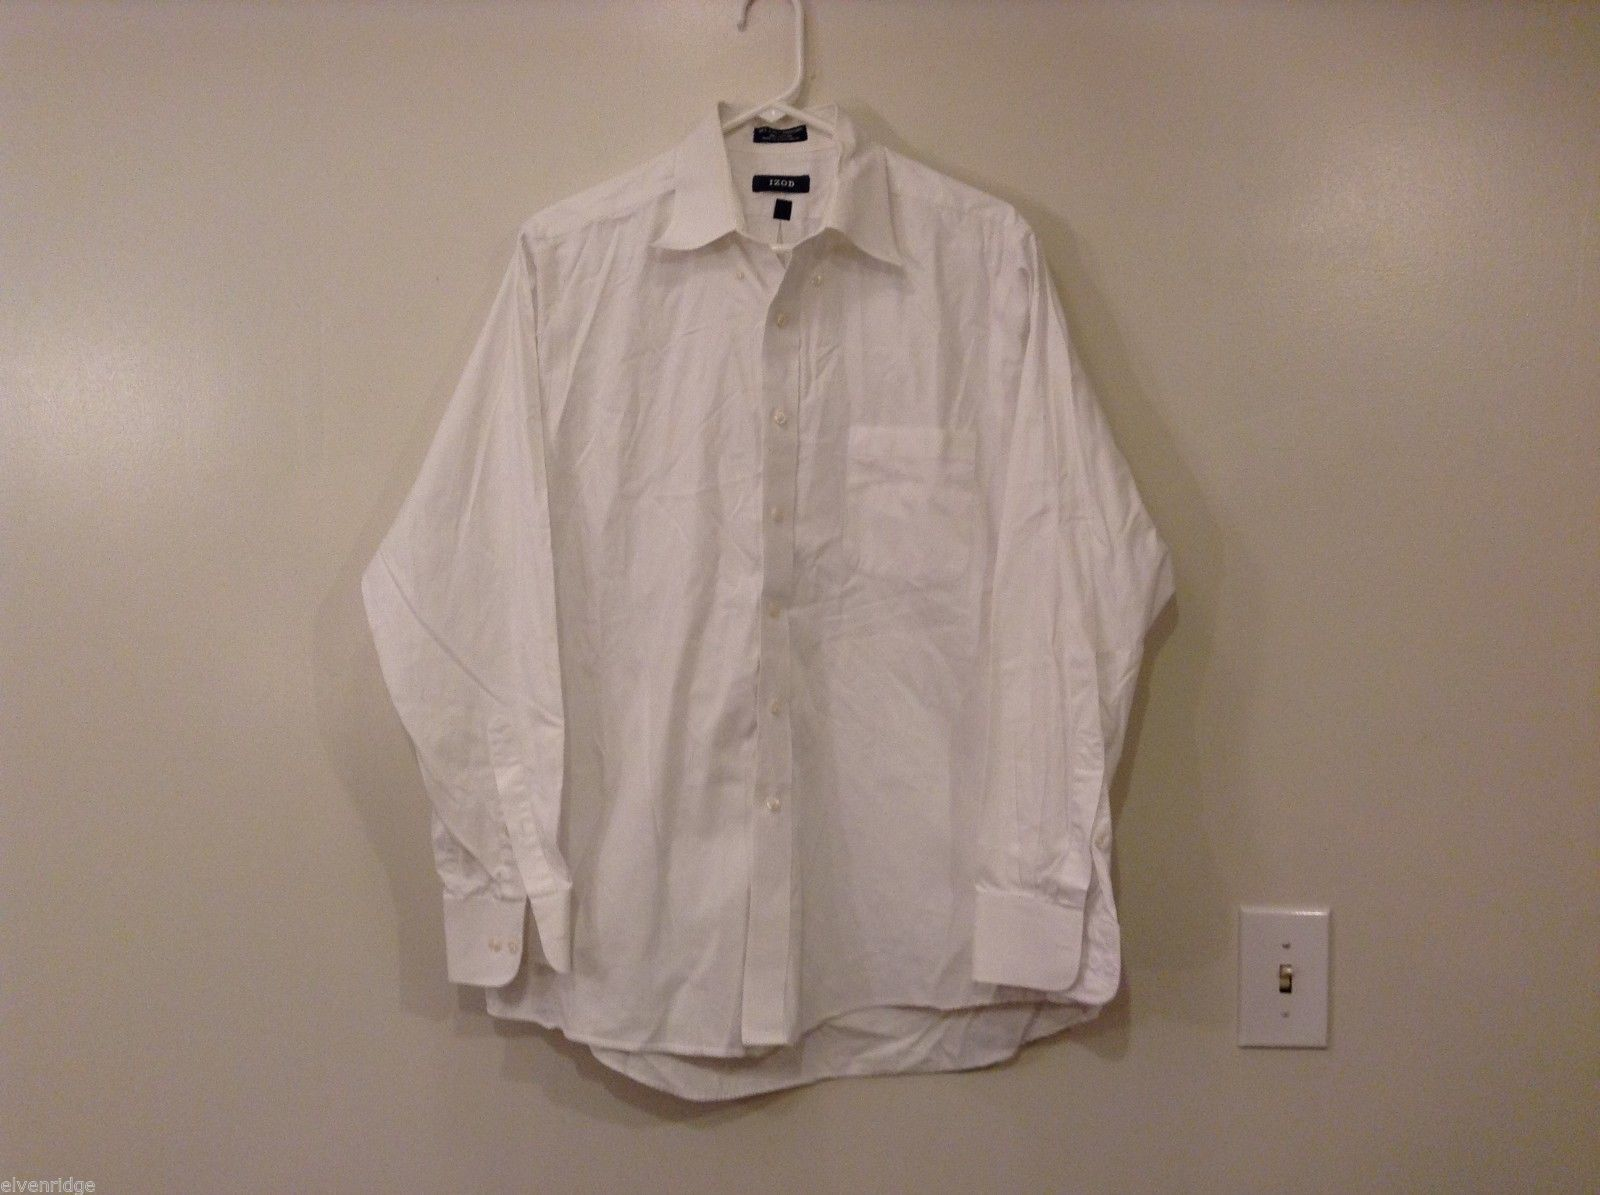 Men's IZOD Easy Care White 100% Cotton Classic Dress Shirt Size L/16 (34-35)